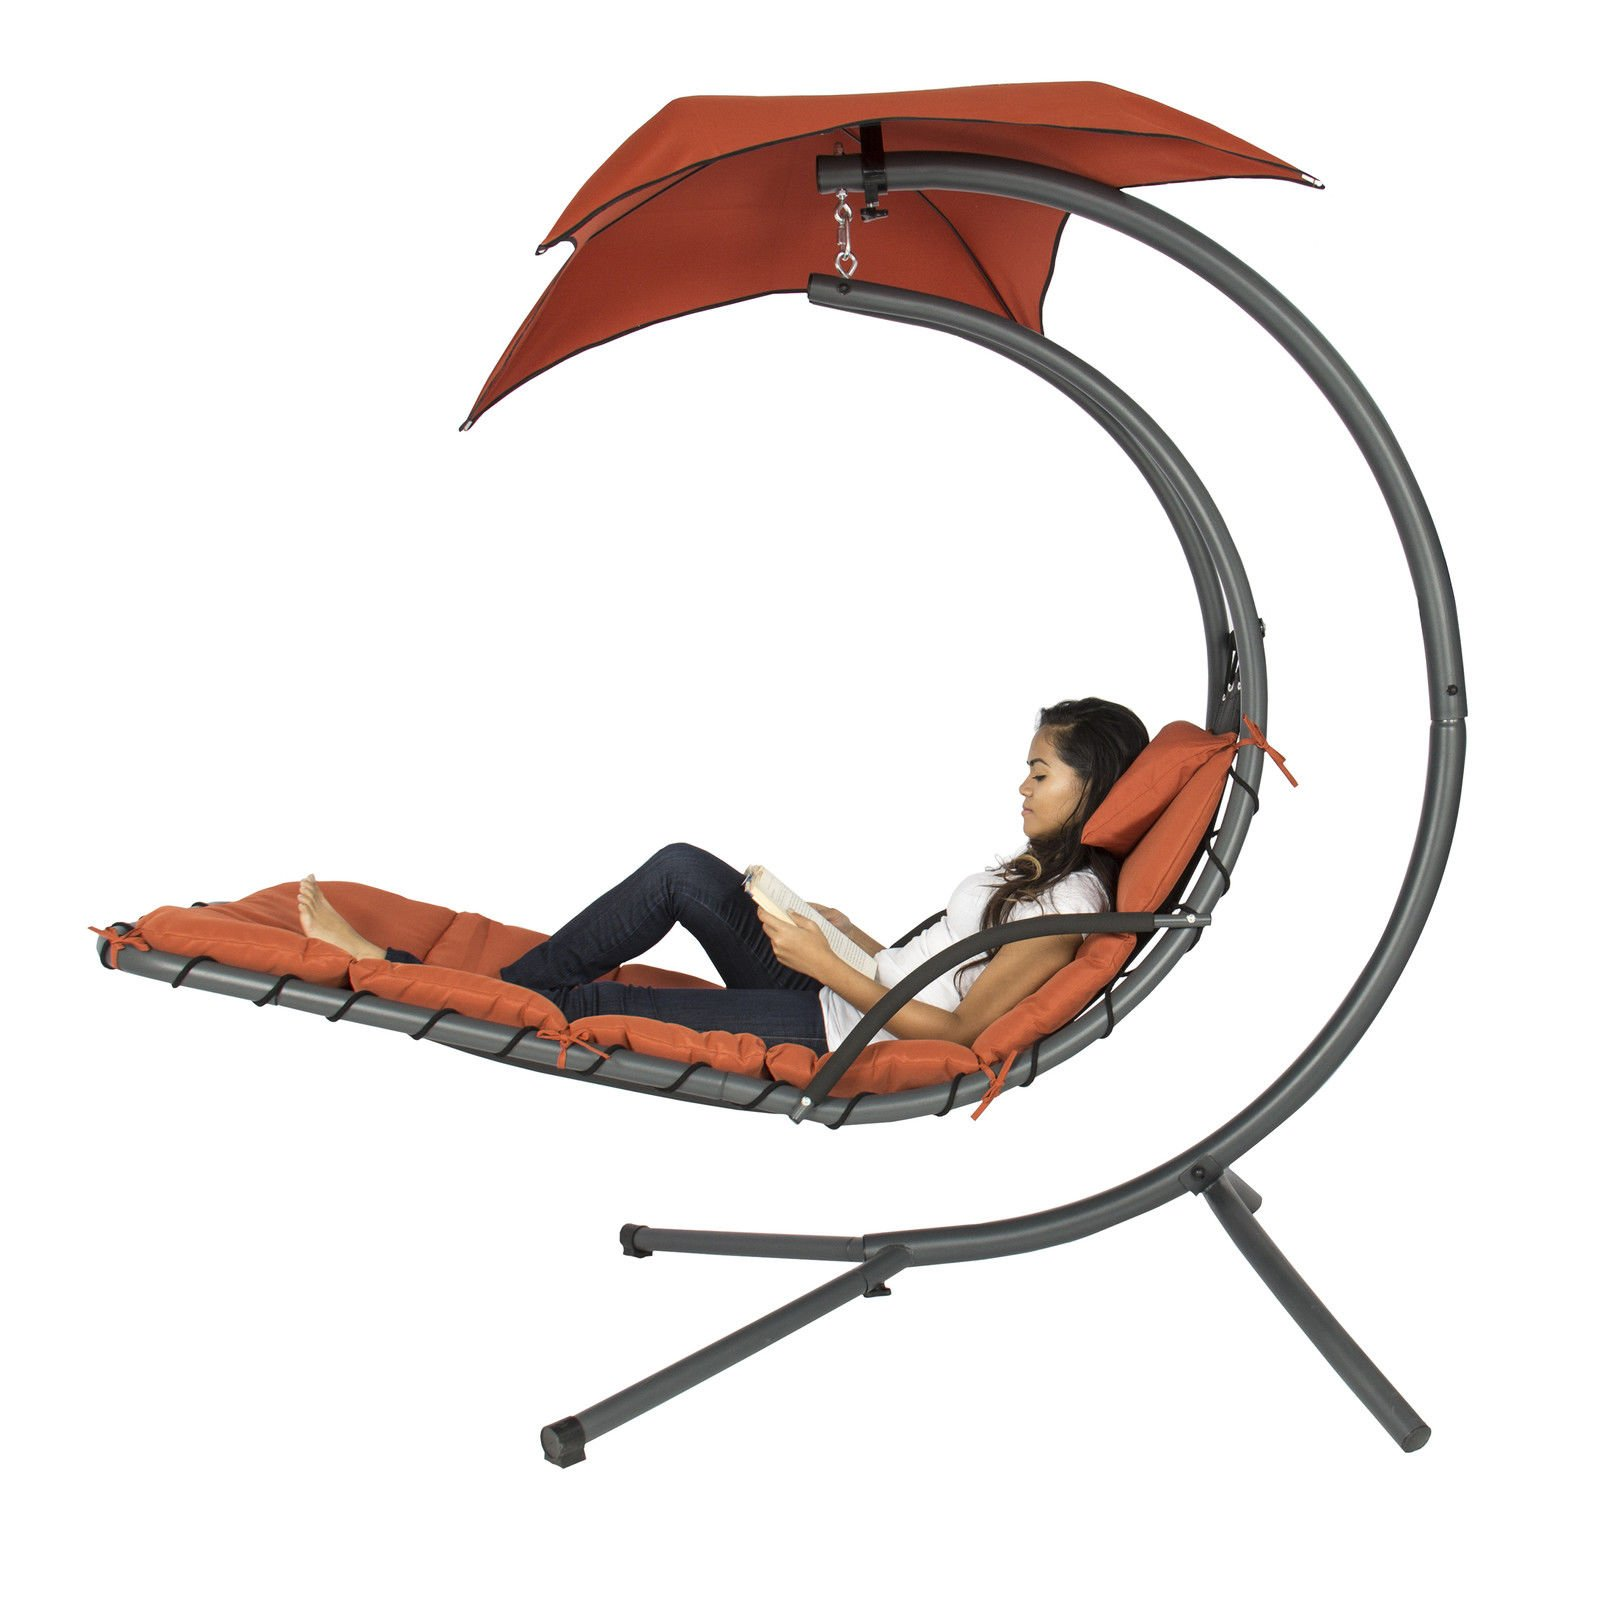 NUMBERNINE,Hanging Chaise Lounger Chair Arc Stand Air Porch Swing Hammock Chair Canopy,garden tool organizer